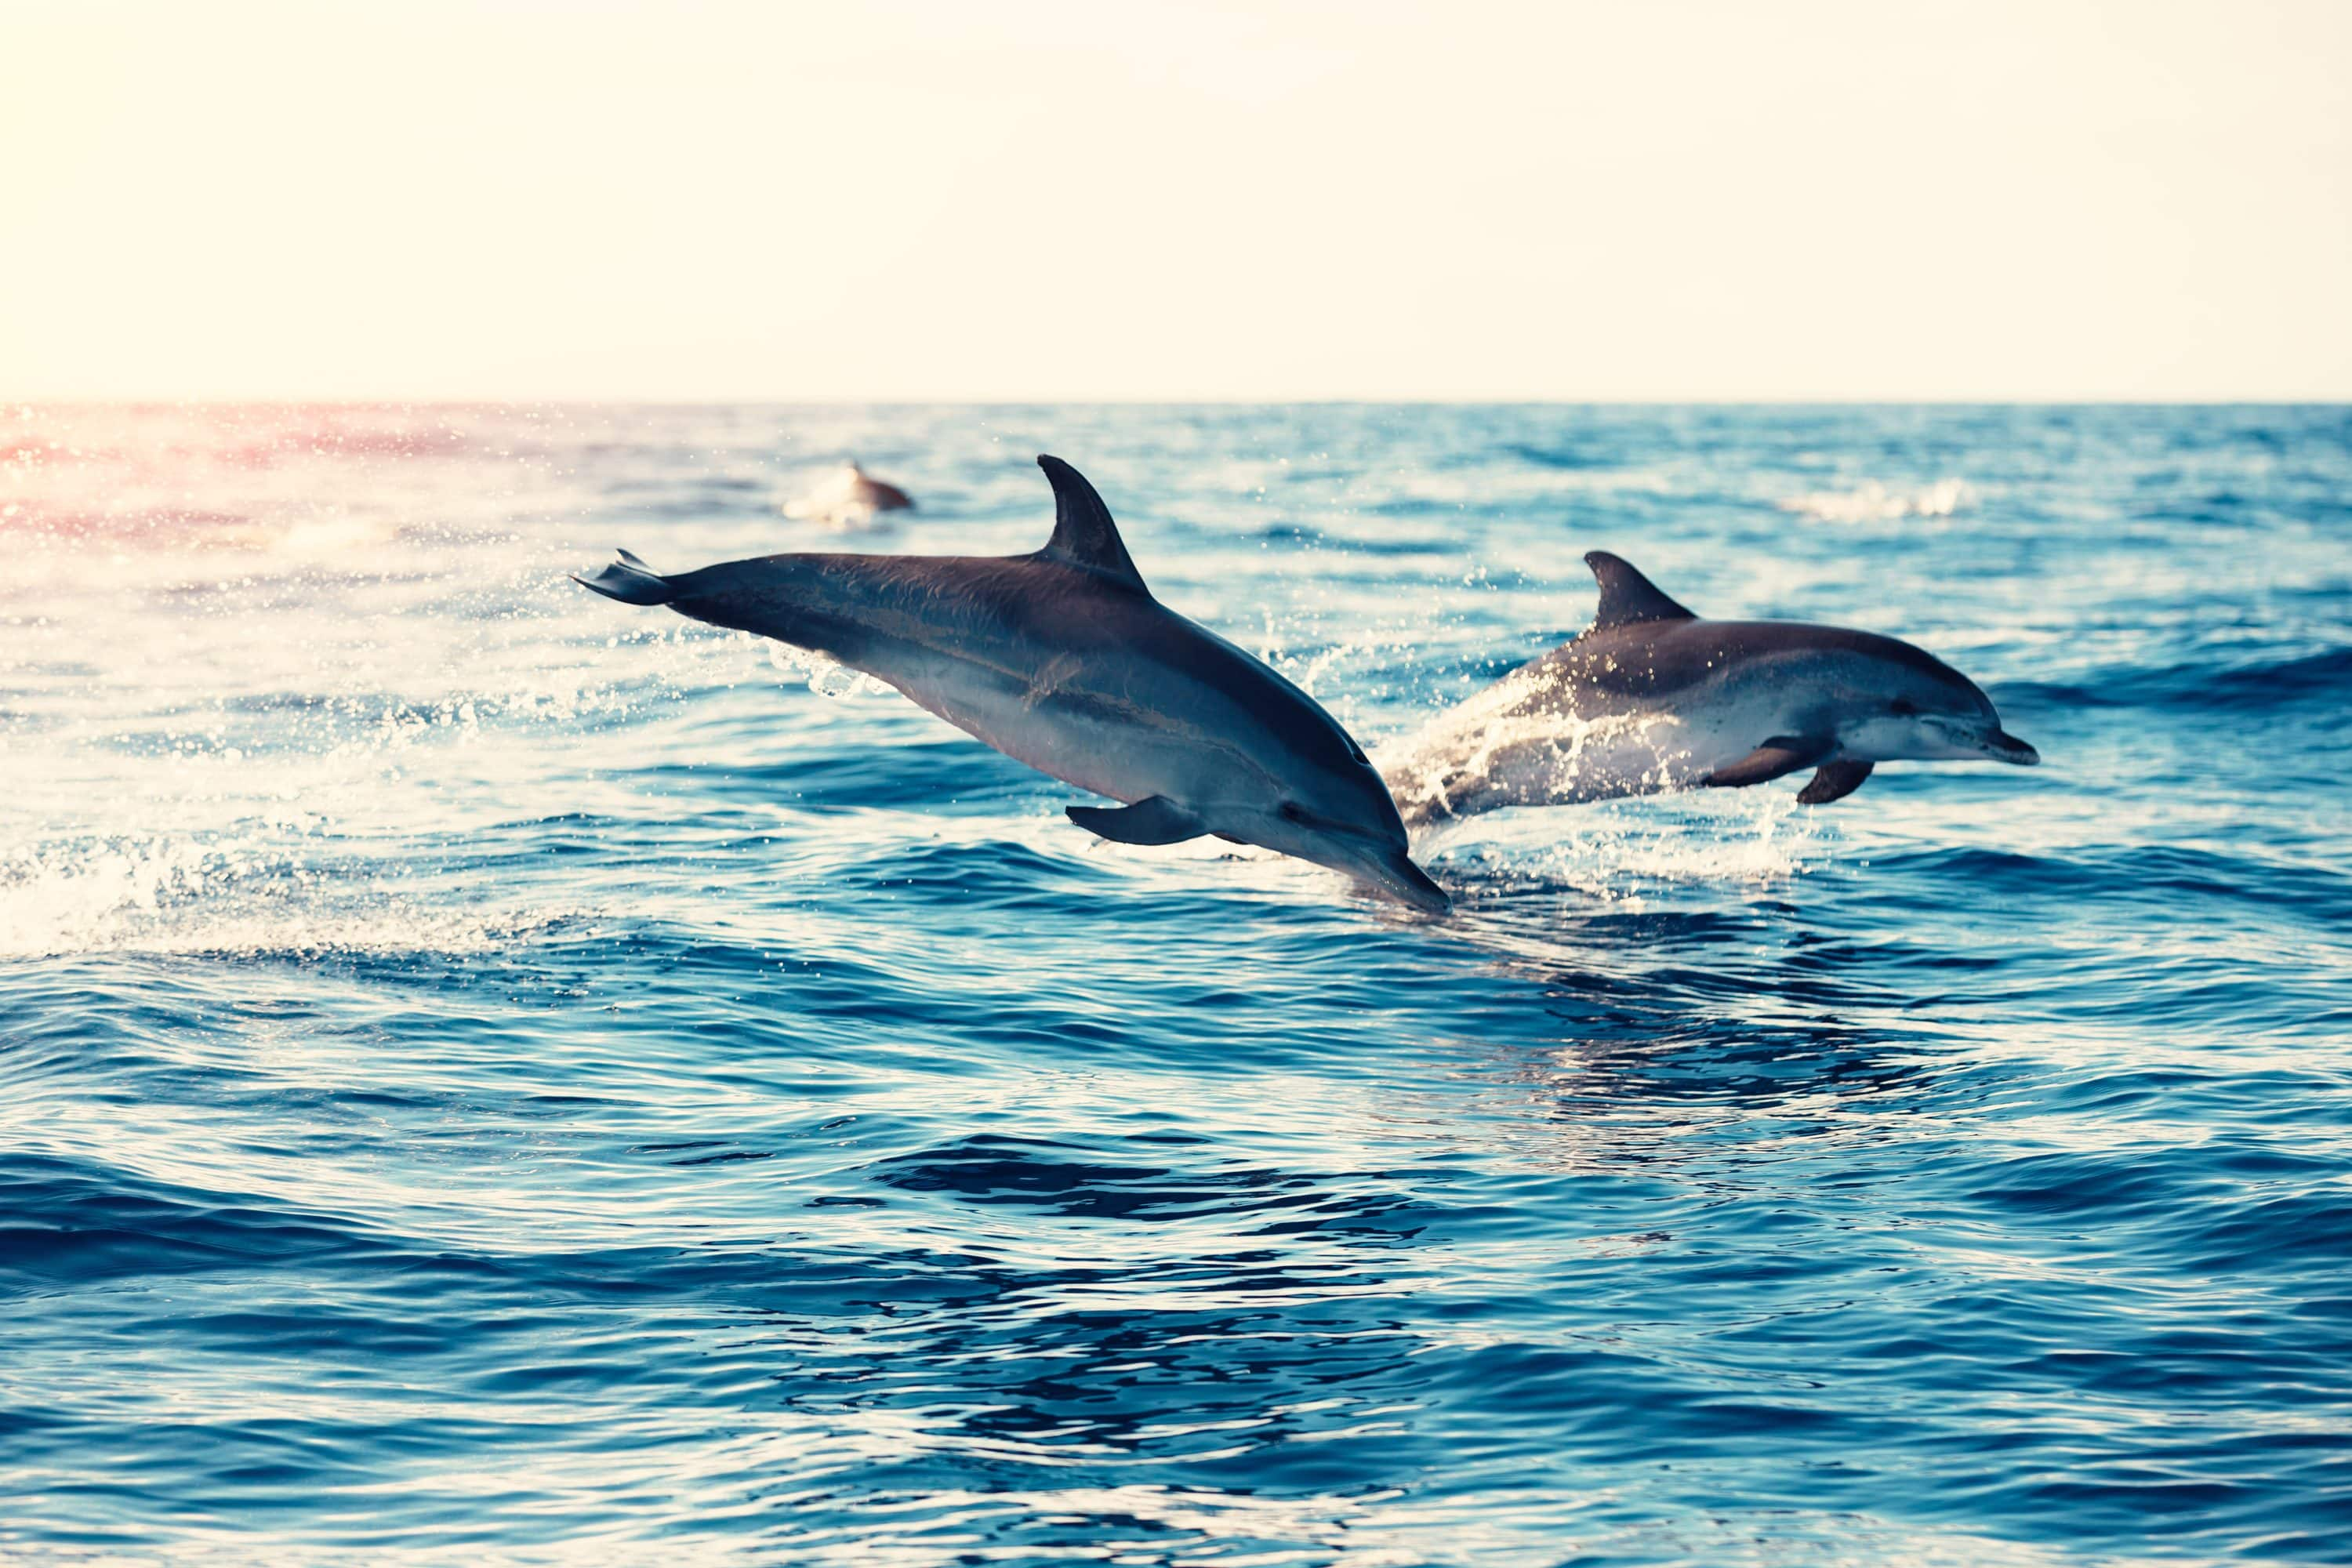 Dolphins jump in the sea